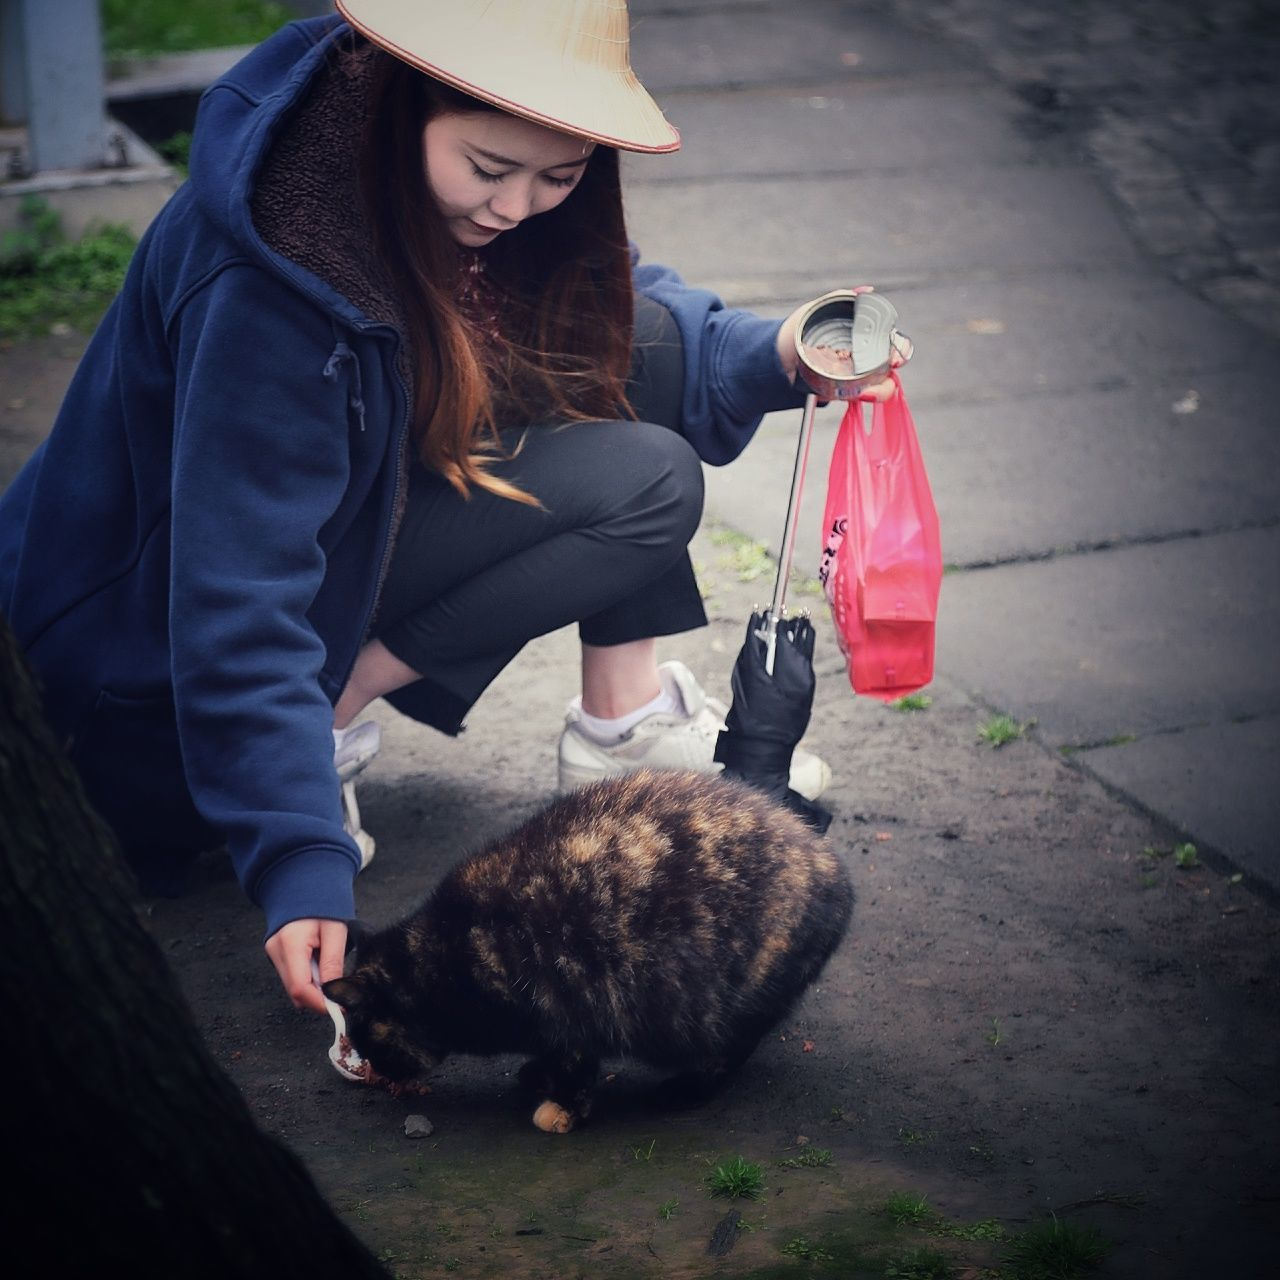 EyeEmNewHere Korean Girl Cat One Woman Only Only Women Animal One Animal One Person Knit Hat Livestock Pets Adults Only People Adult Outdoors Day Urban Exploration Light And Shadows Nature Beautiful Streetphotography EyeEm Best Shots - Nature Urban Landscape Travel Beauty In Nature